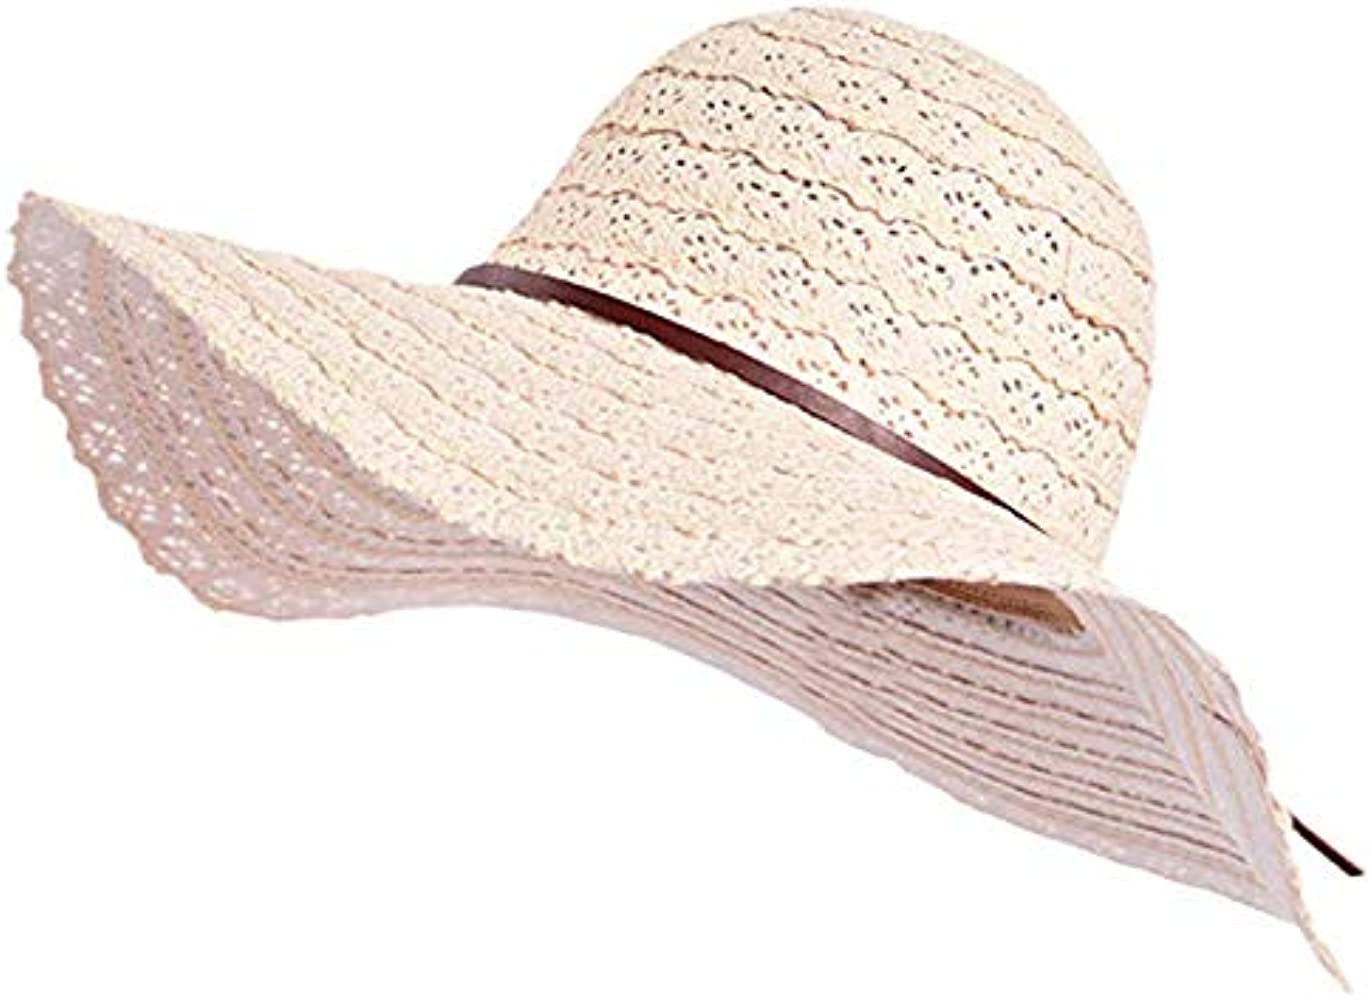 be03de30959d4e Summer Beach Sun Hats for Women, Foldable Floppy Cotton UV Hat, Adjustable Wide  Brim